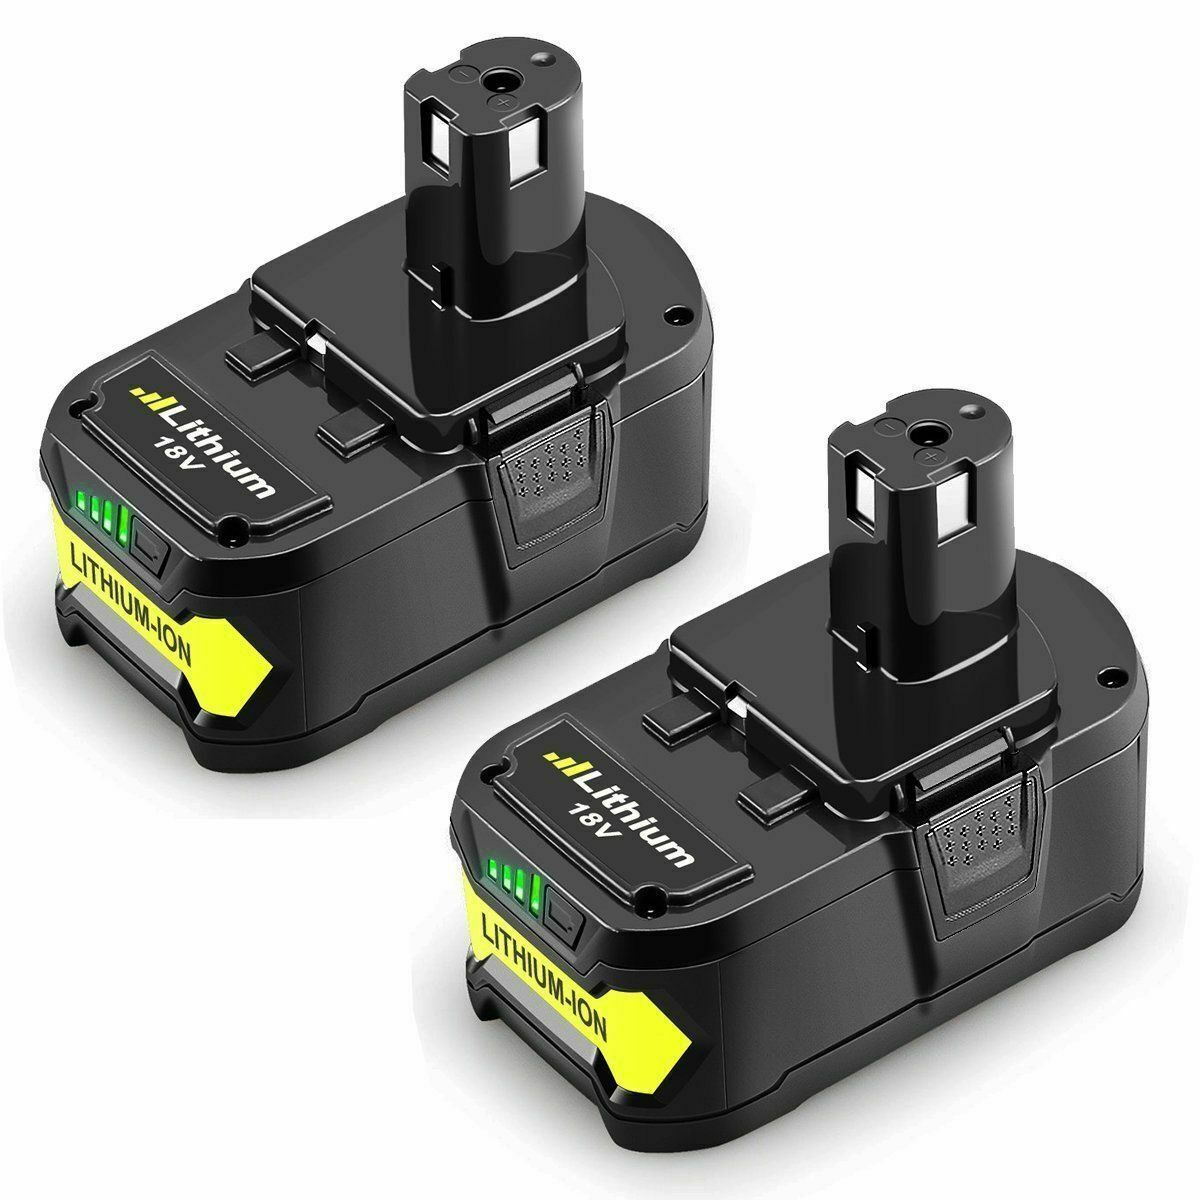 2Pcs 18V Lithium Battery For Ryobi 4000mAh/4.0AH (FREE SHIPPING - US ONLY)